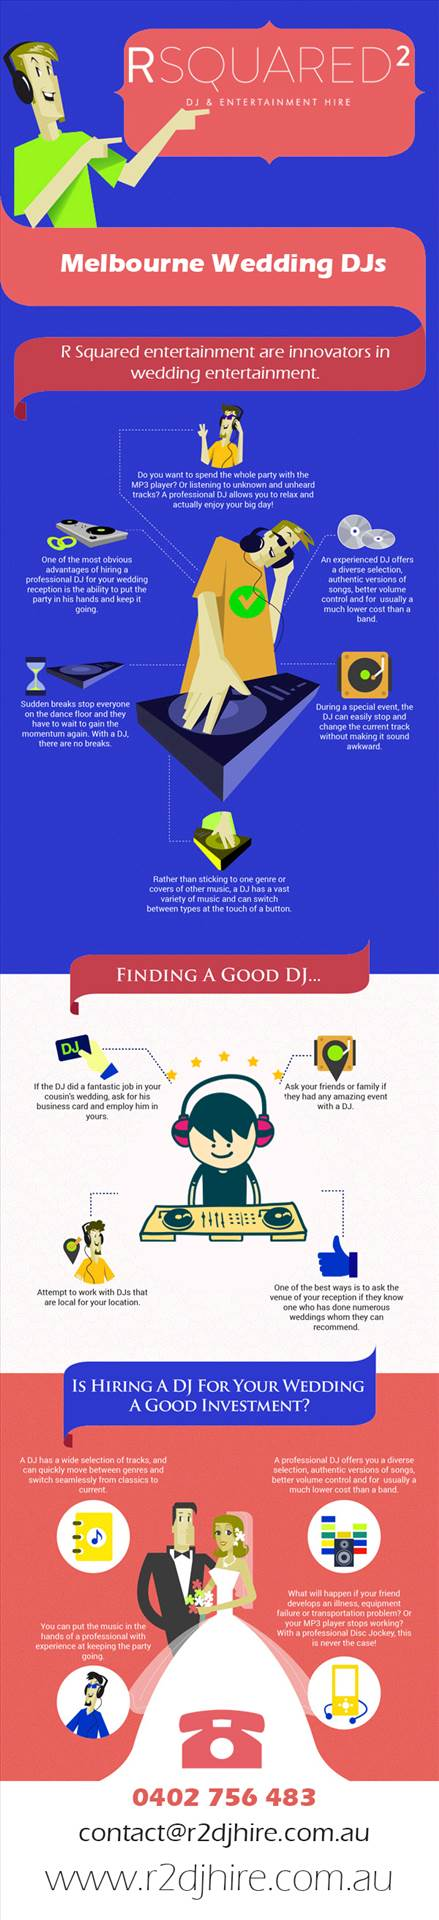 r2djhire-infographics.jpg  by RSQUARED2